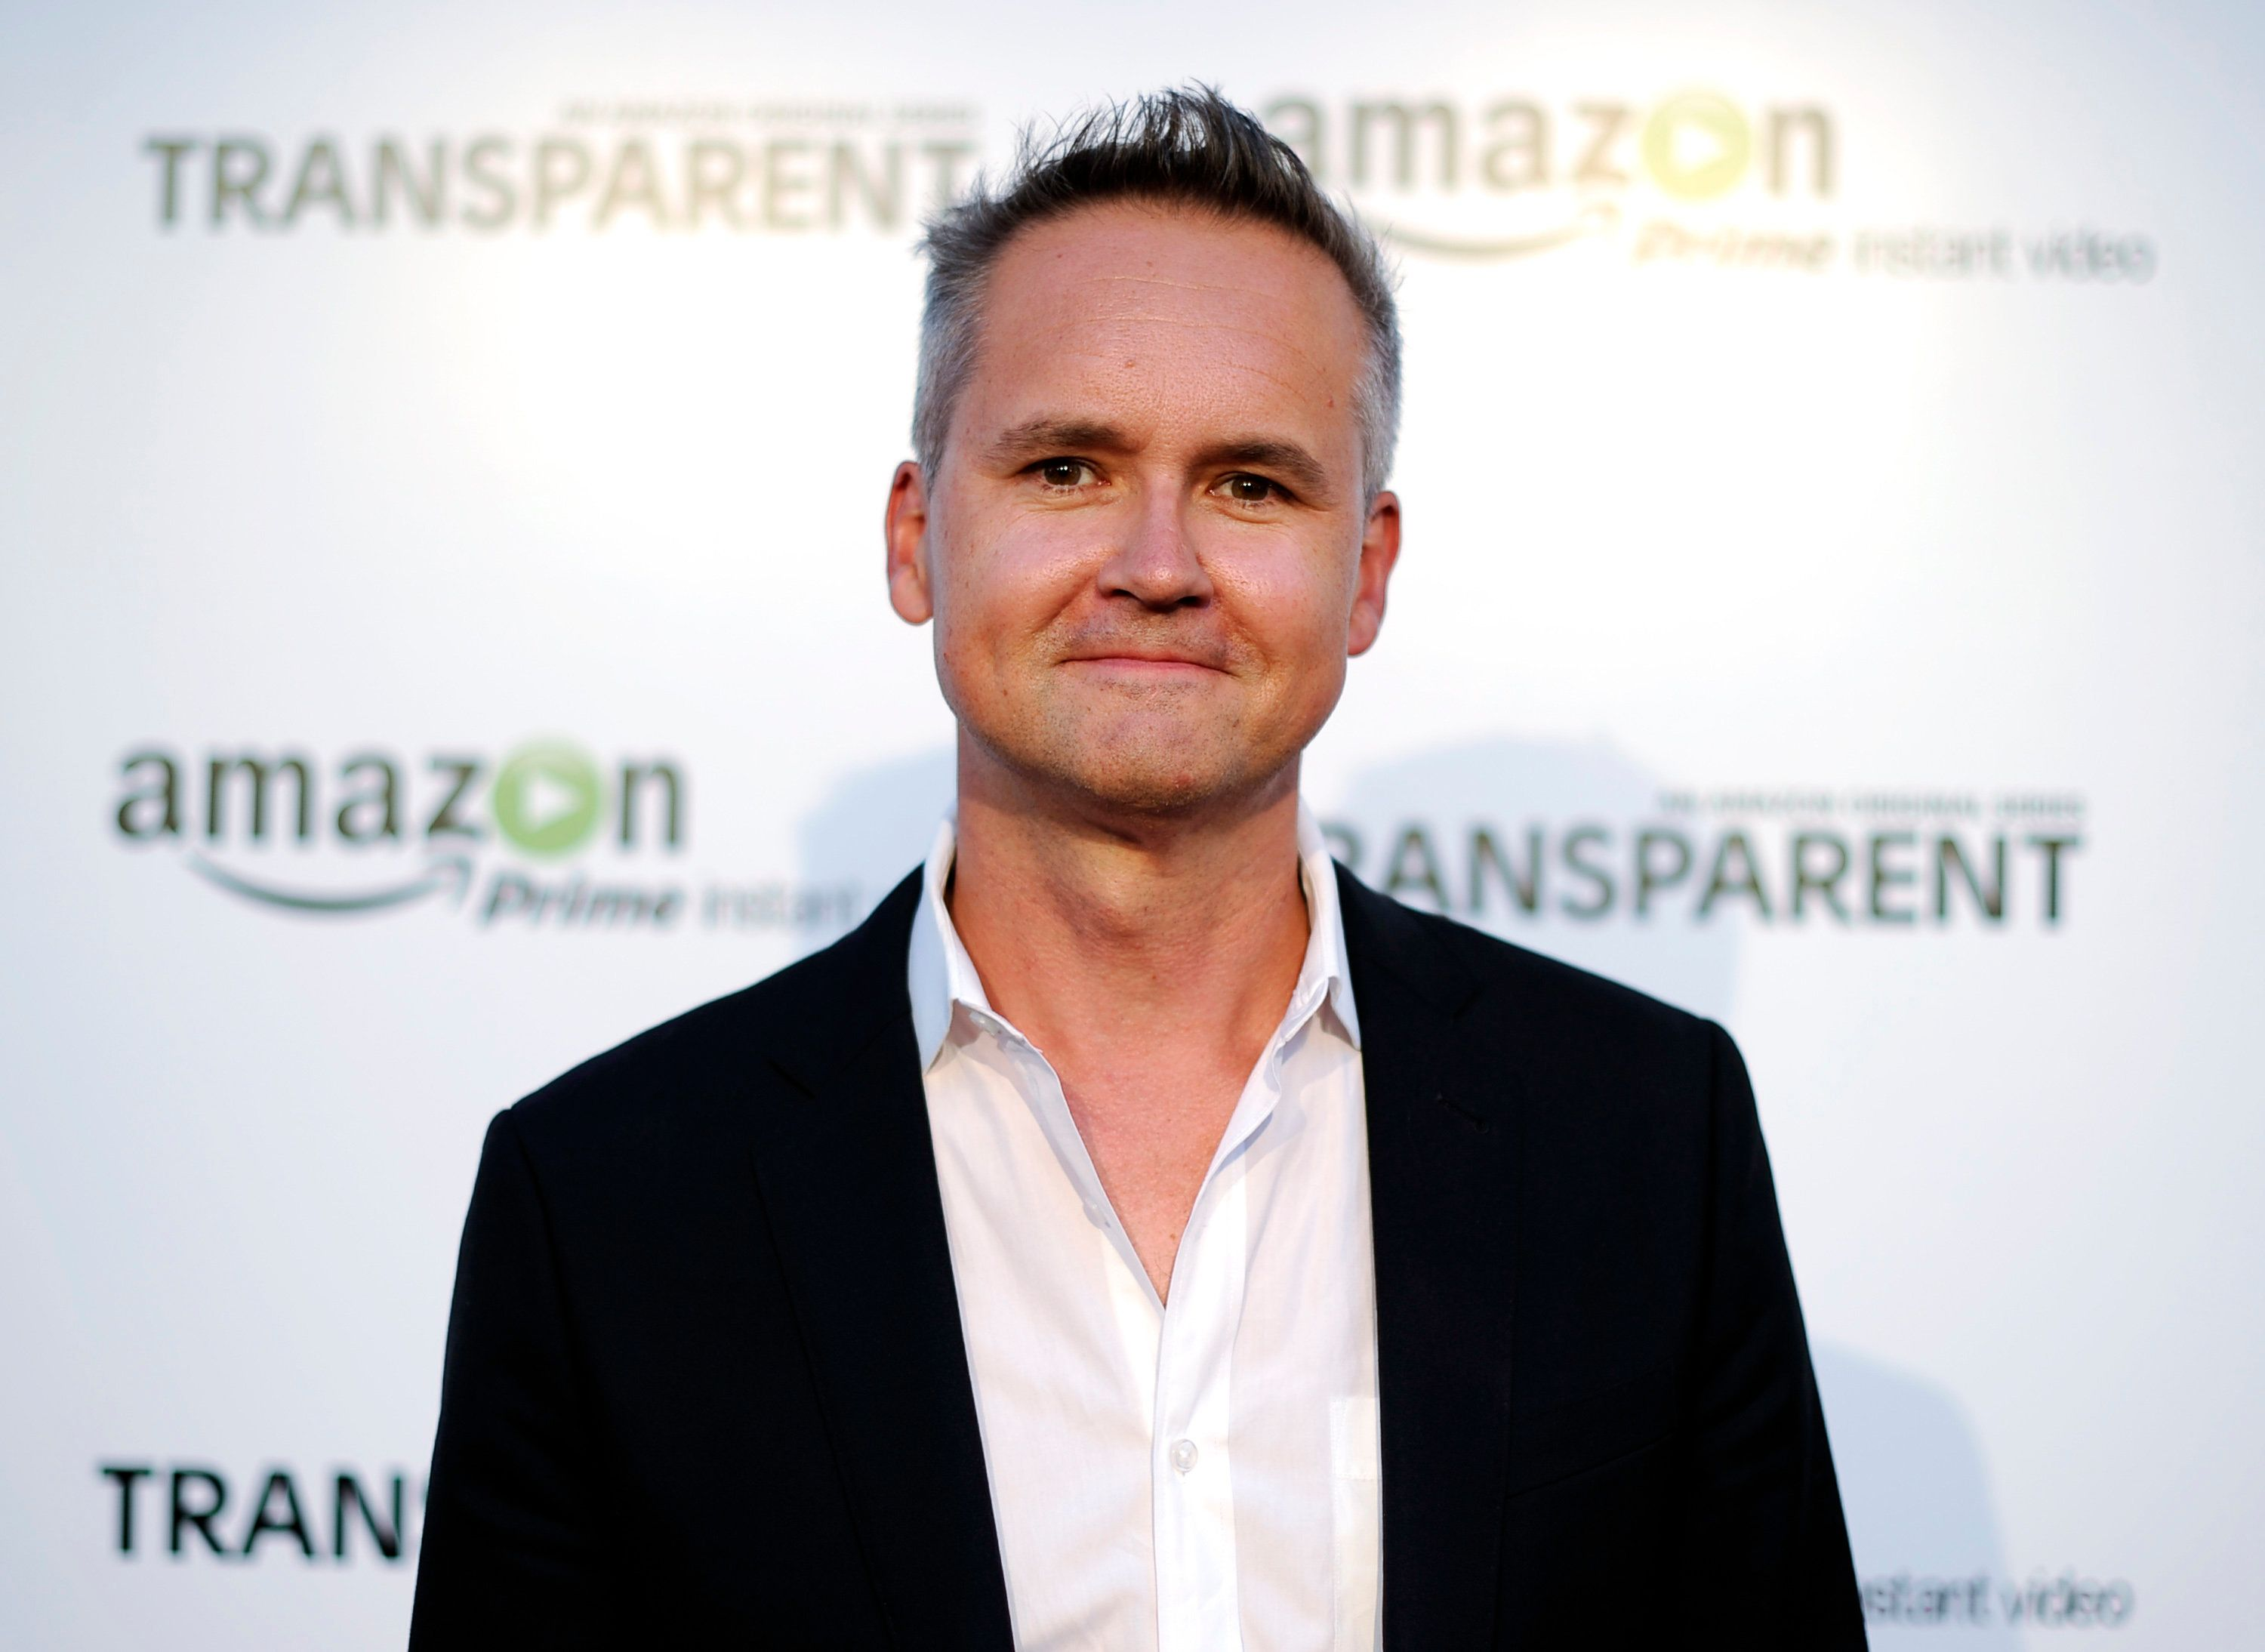 """Roy Price, Director of Amazon Studios, poses during Amazon's premiere screening of the TV series """"Transparent"""" at the Ace Hotel in downtown Los Angeles, California, September 15, 2014. REUTERS/Kevork Djansezian  (UNITED STATES - Tags: ENTERTAINMENT)"""